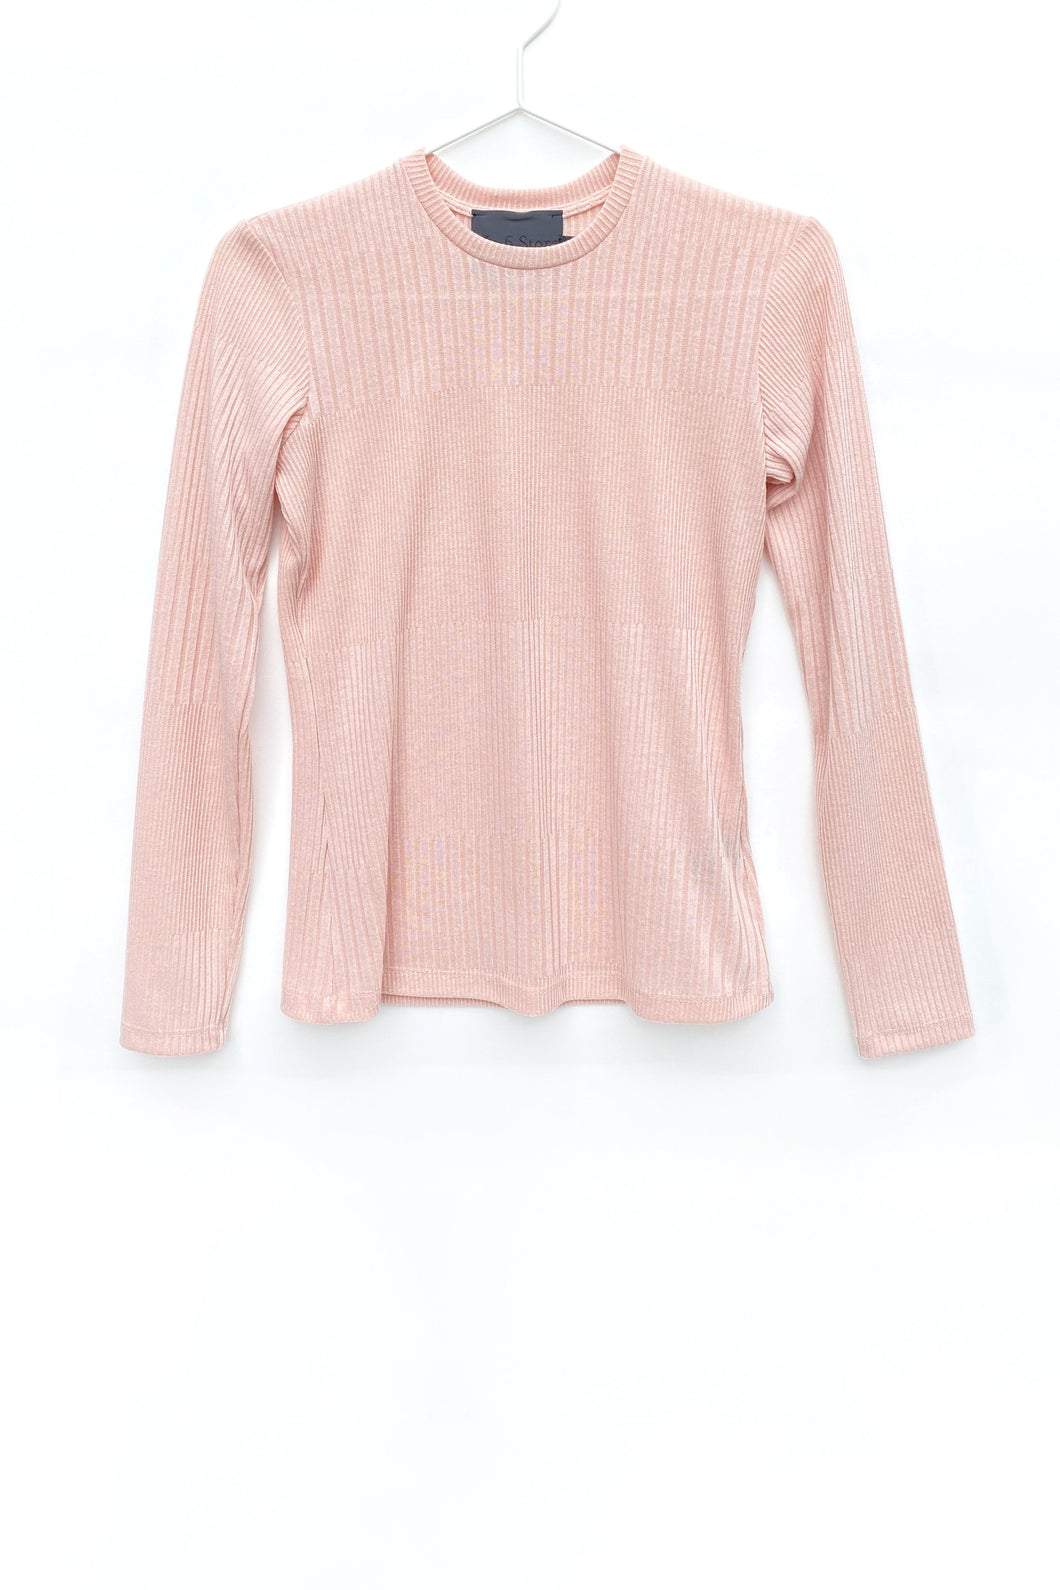 No.6 Stellan Crewneck Knit in Blush